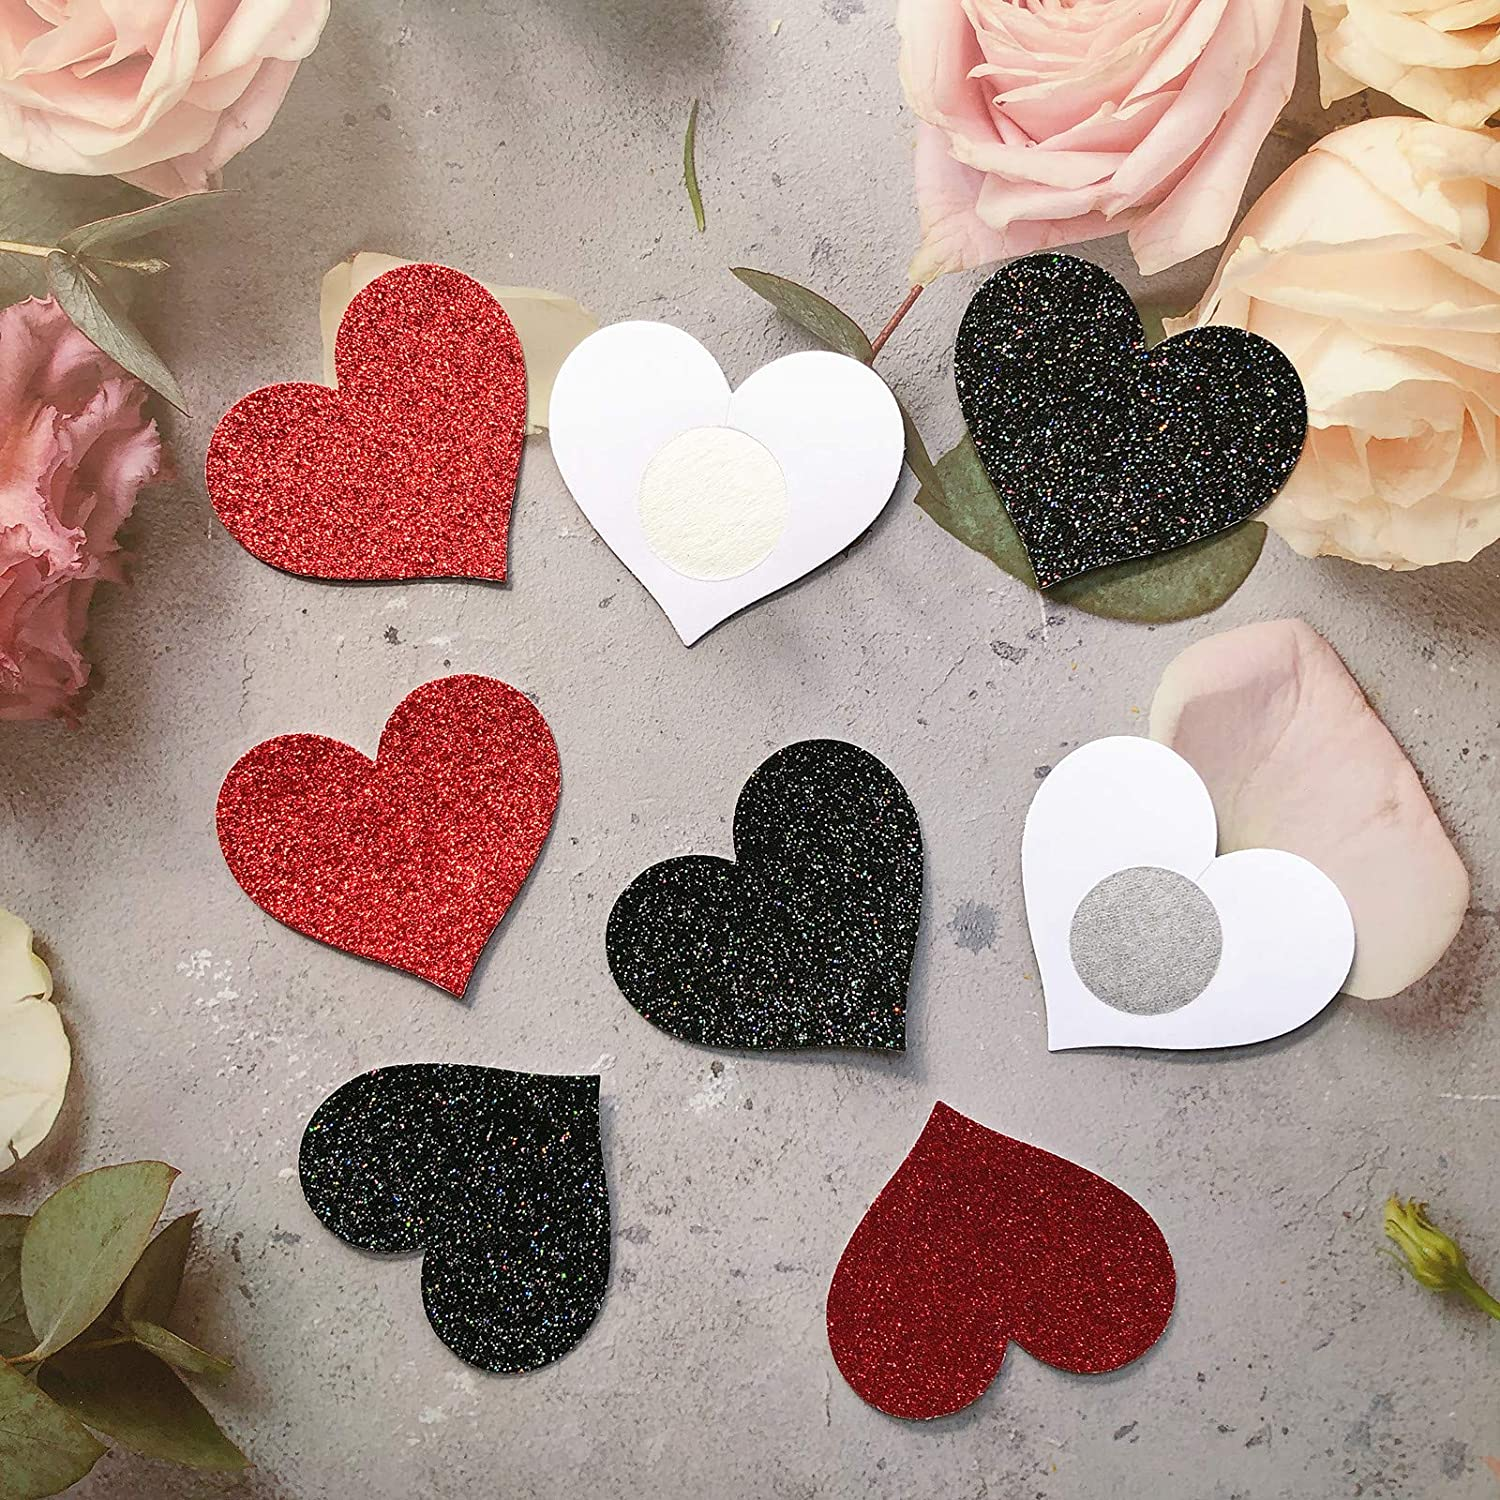 U//D 12 Pairs Glitter Nipple Breast Covers Heart Shaped Nipple Stickers Disposable Nipple Pasties Bra Petals Covers for Women Red